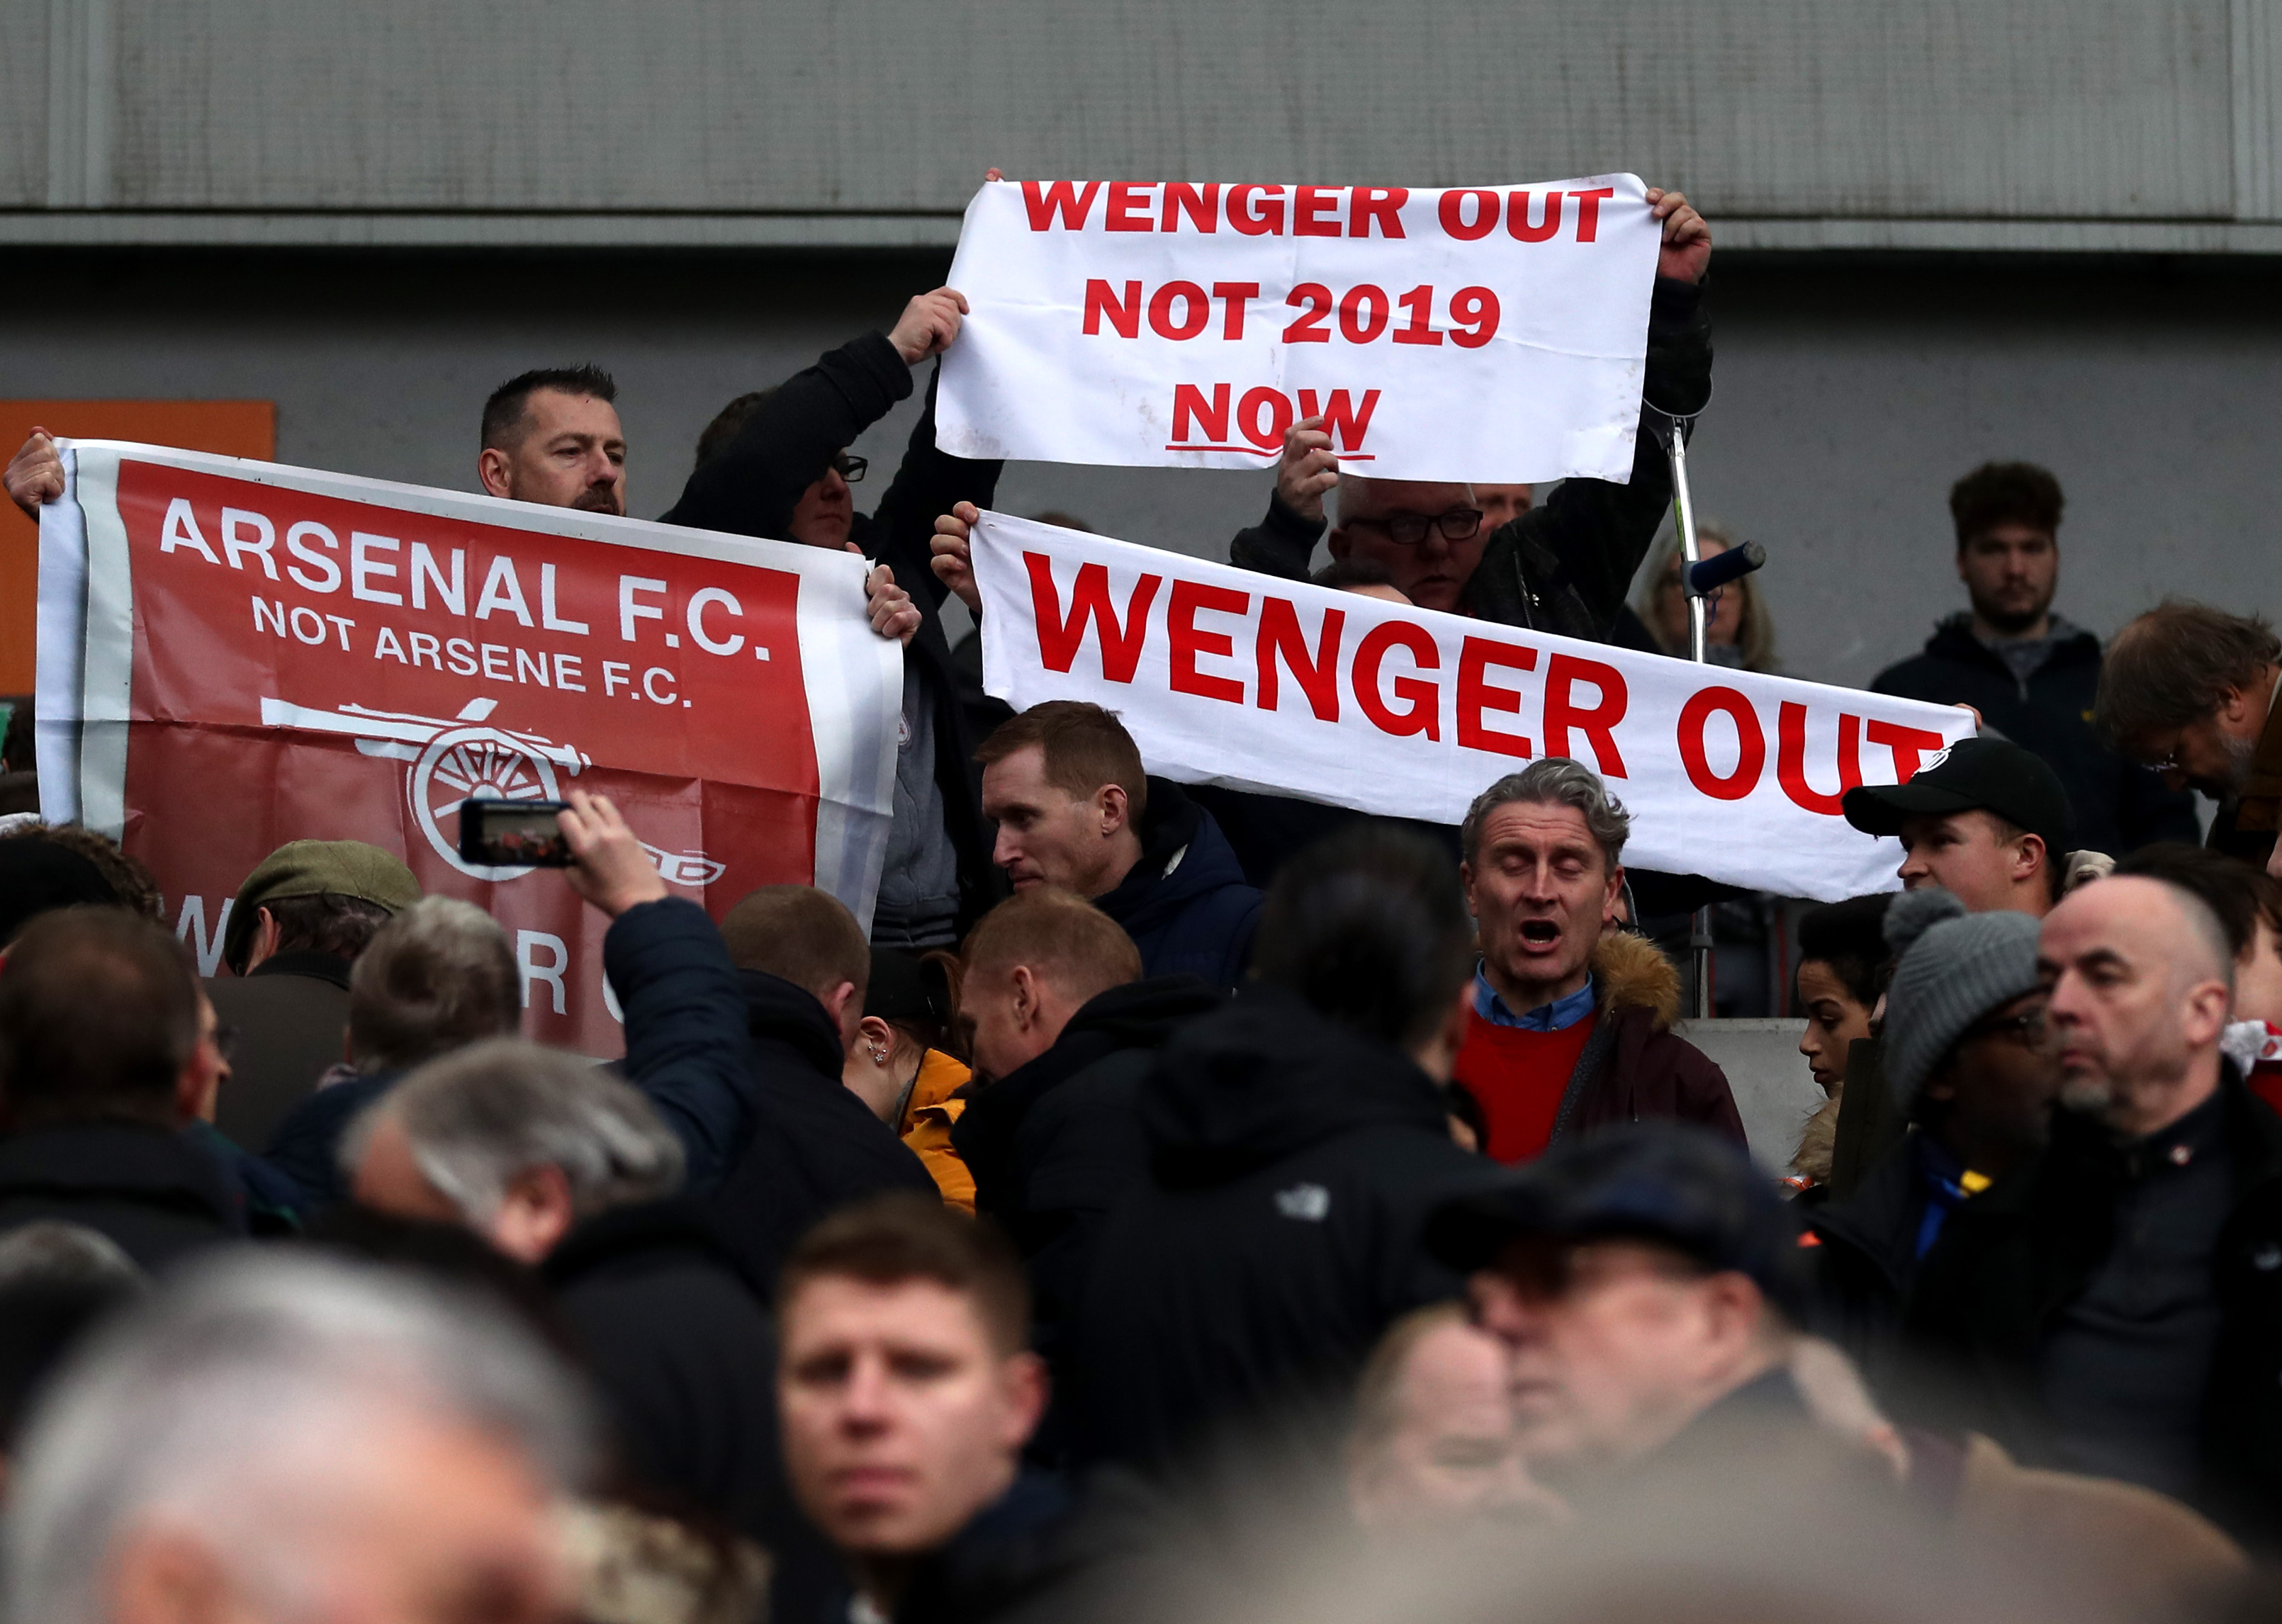 Arsenal Supporters' Trust want to see Wenger out